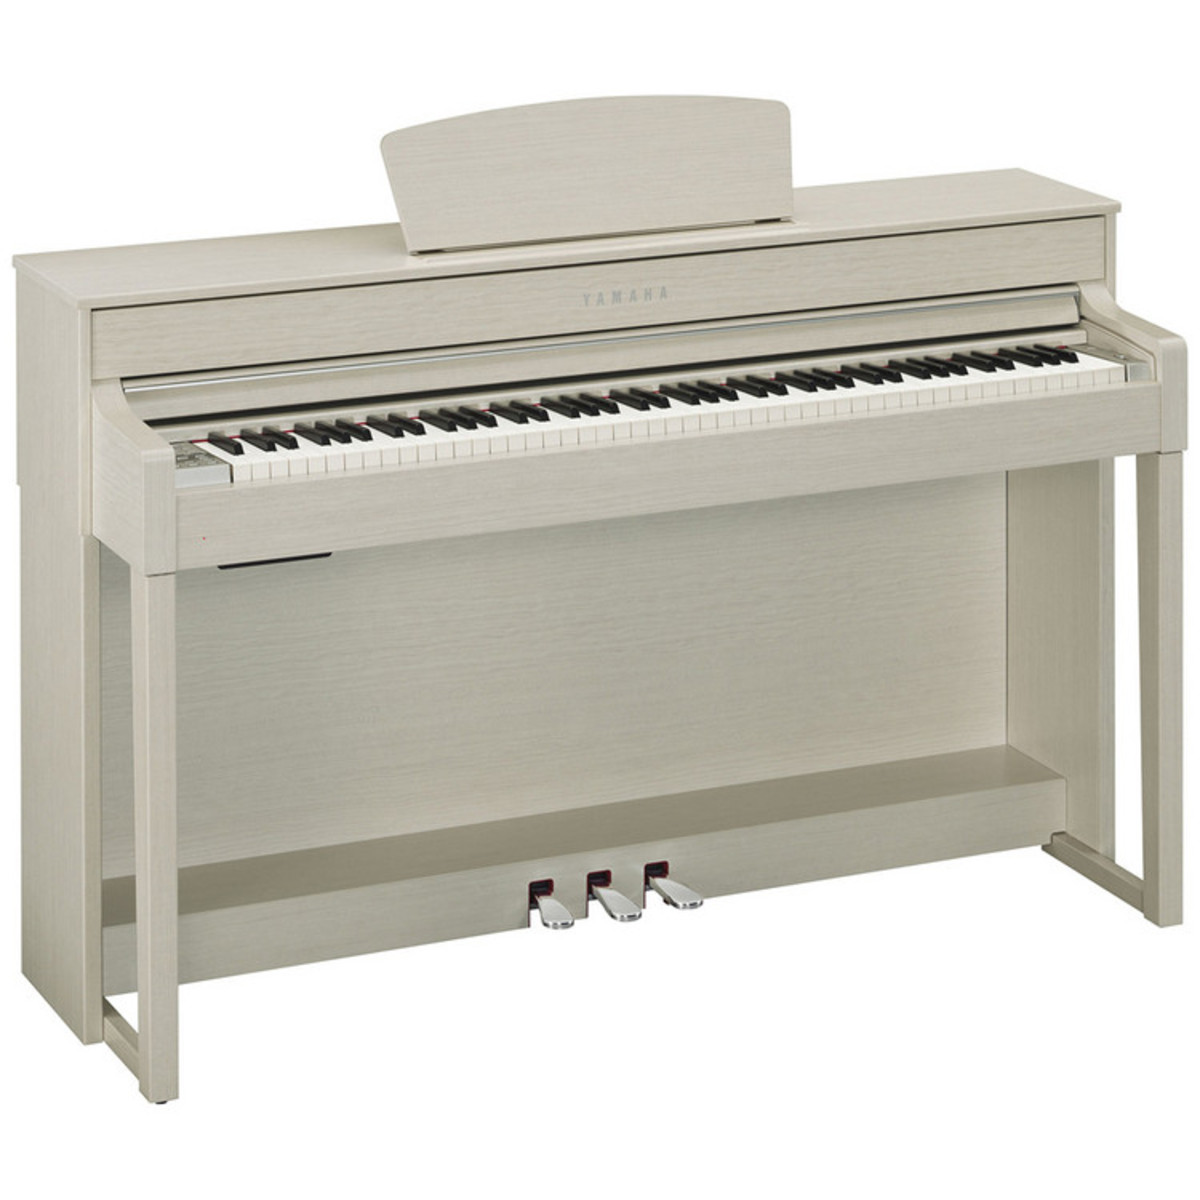 Yamaha clavinova clp535 digital piano white ash at for White yamaha piano